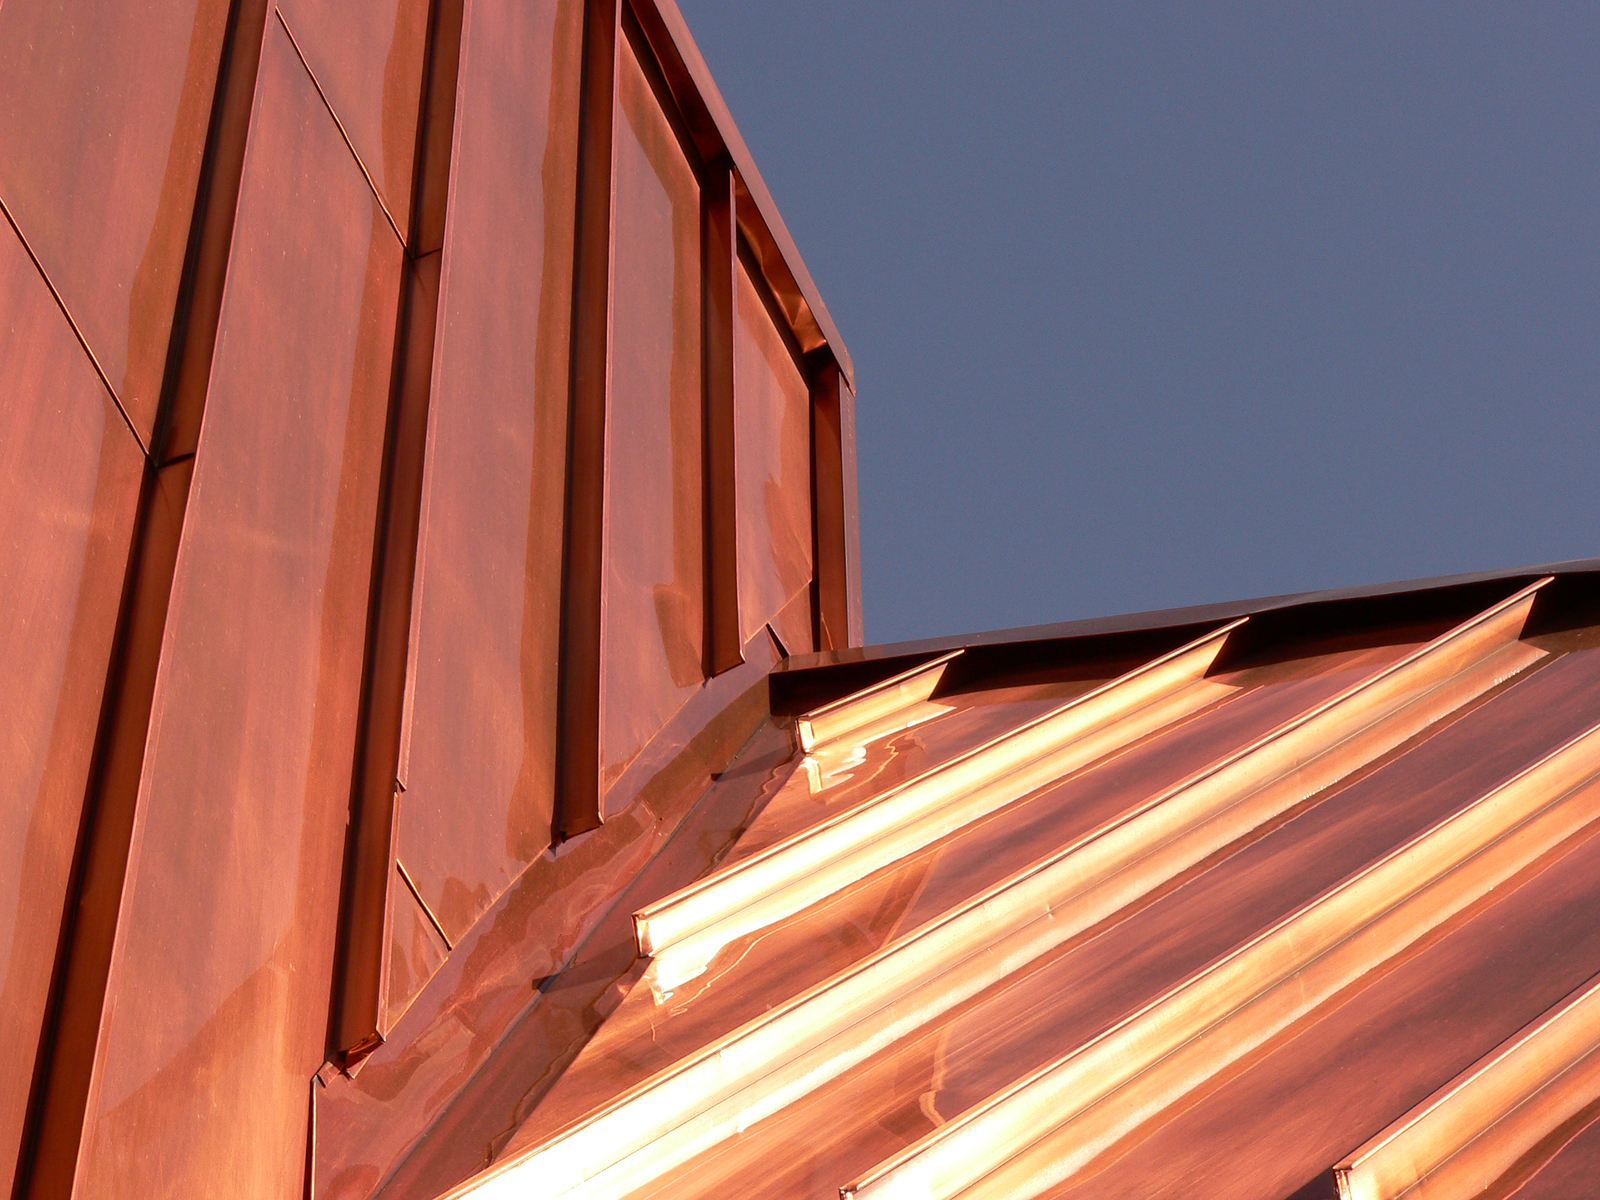 copper roof on store in banff township, banff national park, alberta, canada.